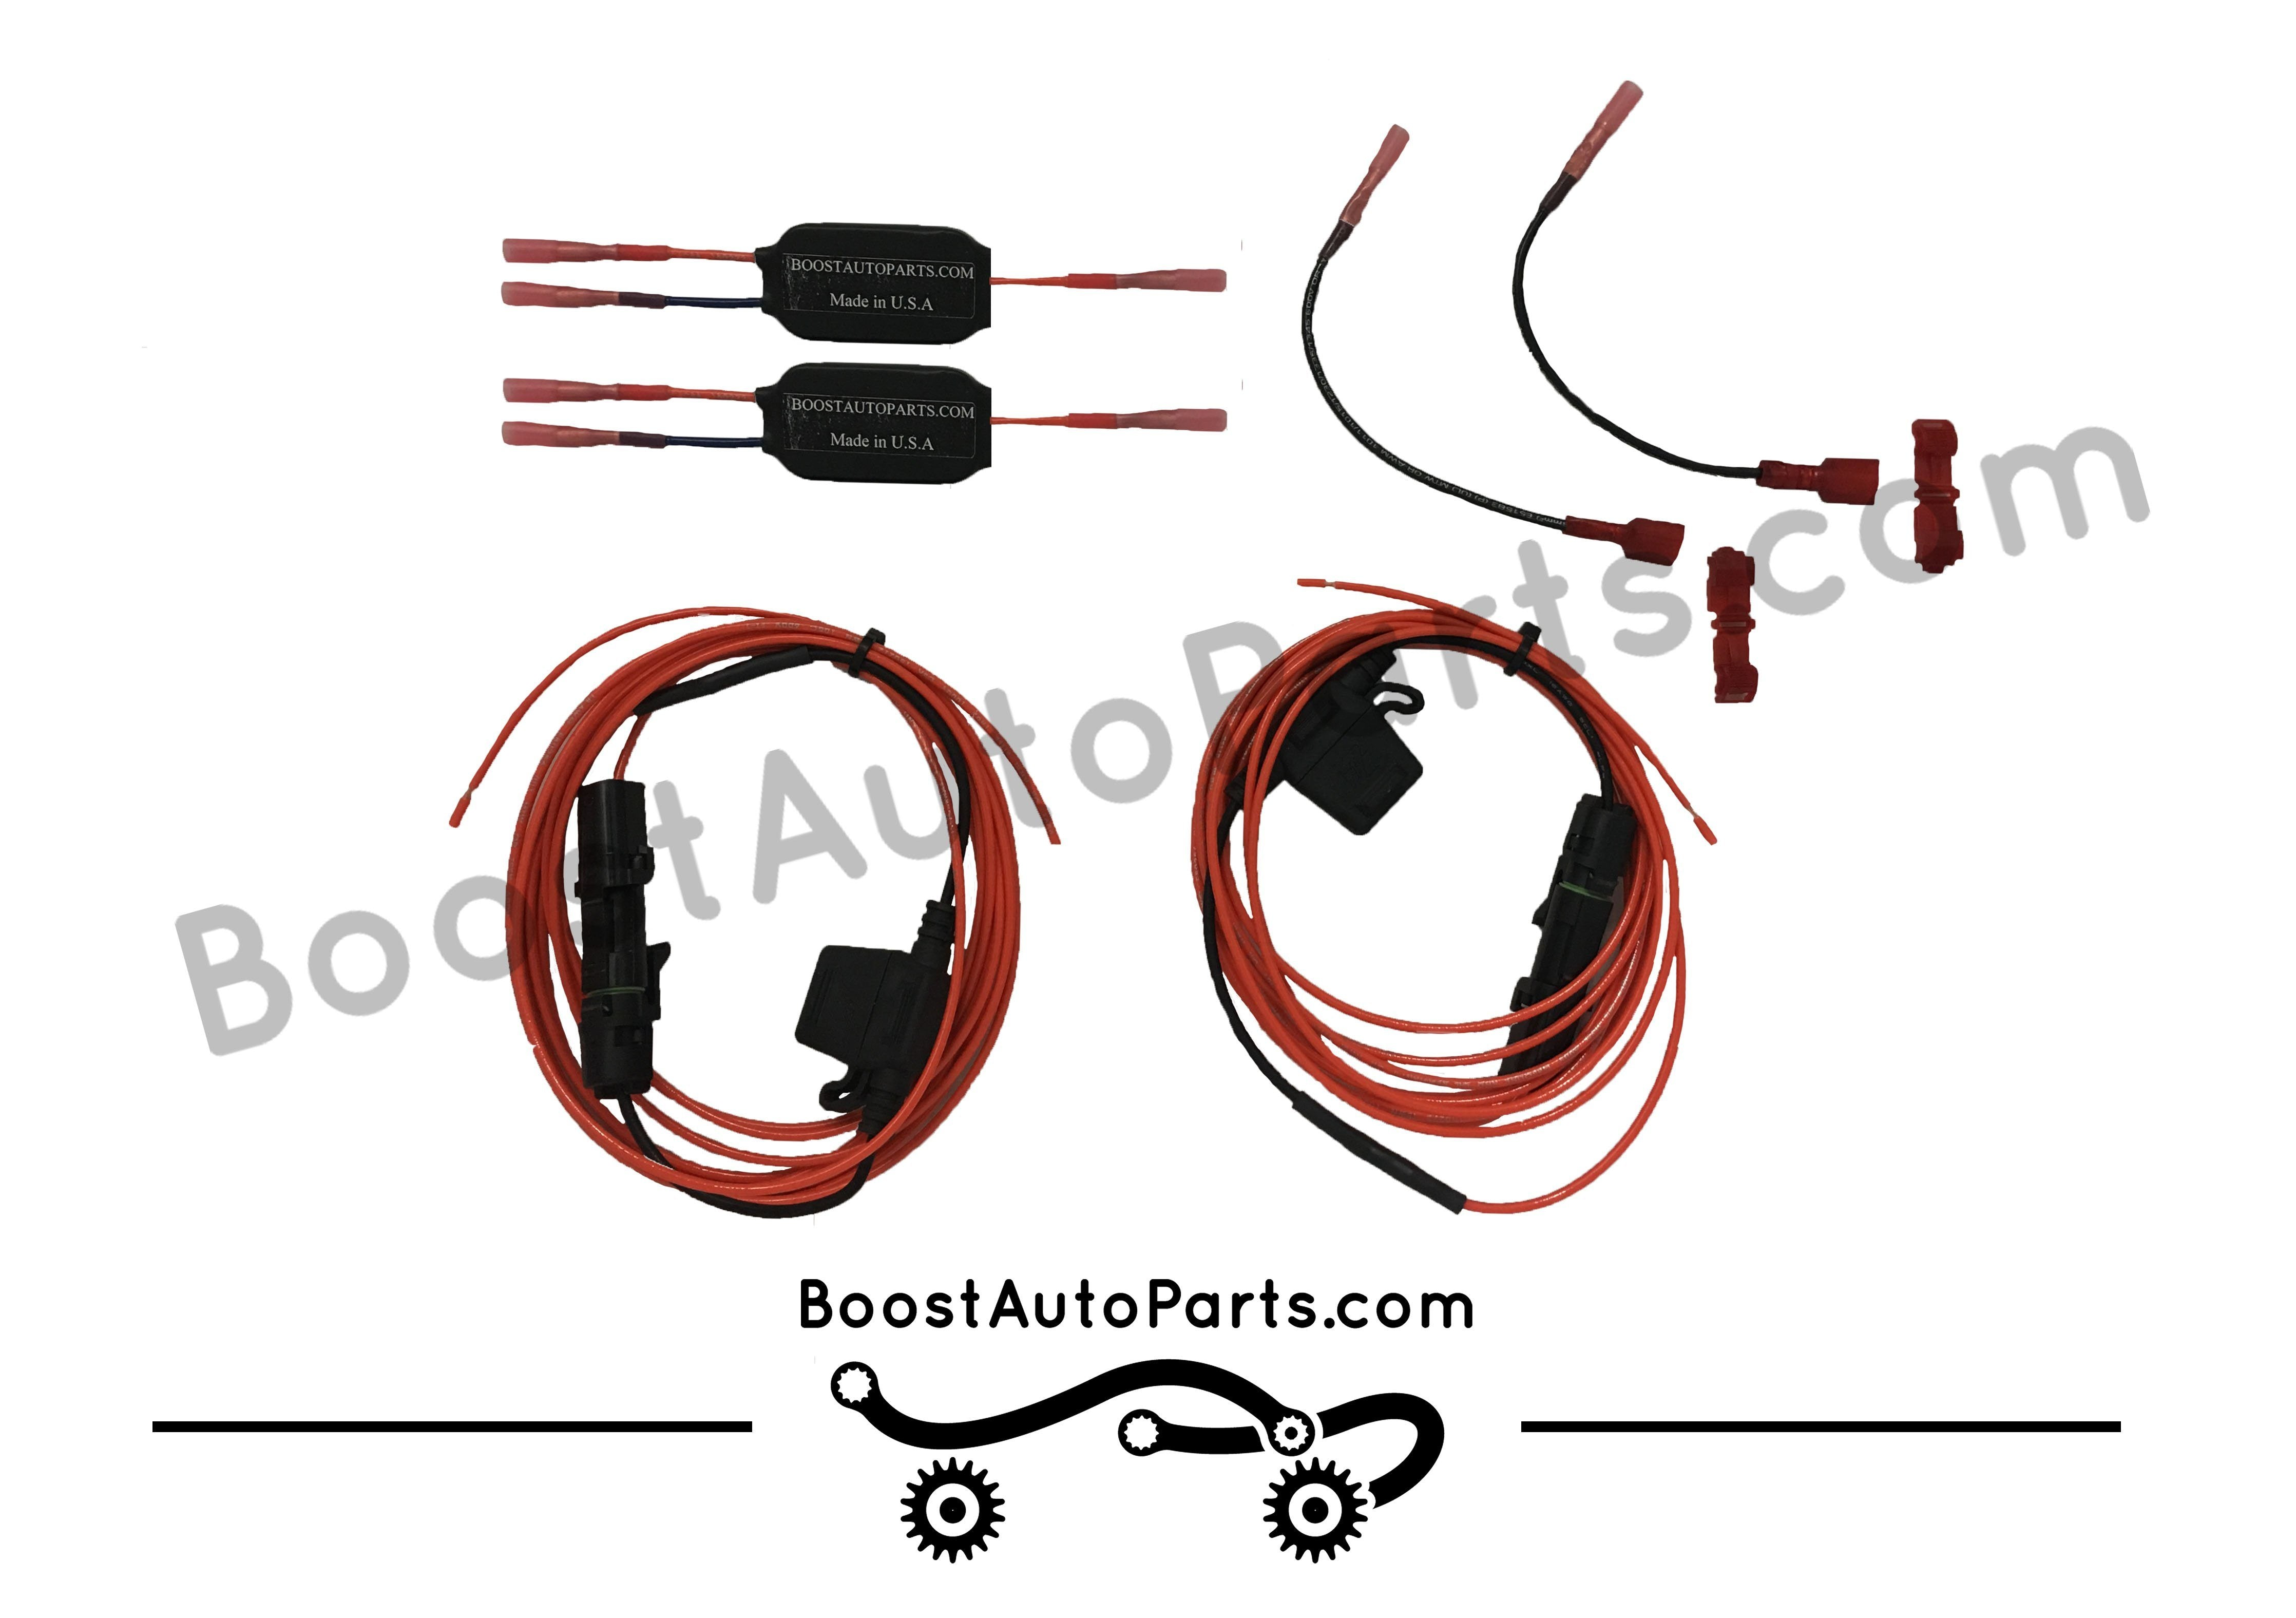 Dual Function (Signal & Running Light) Wiring Harness for Aftermarket on